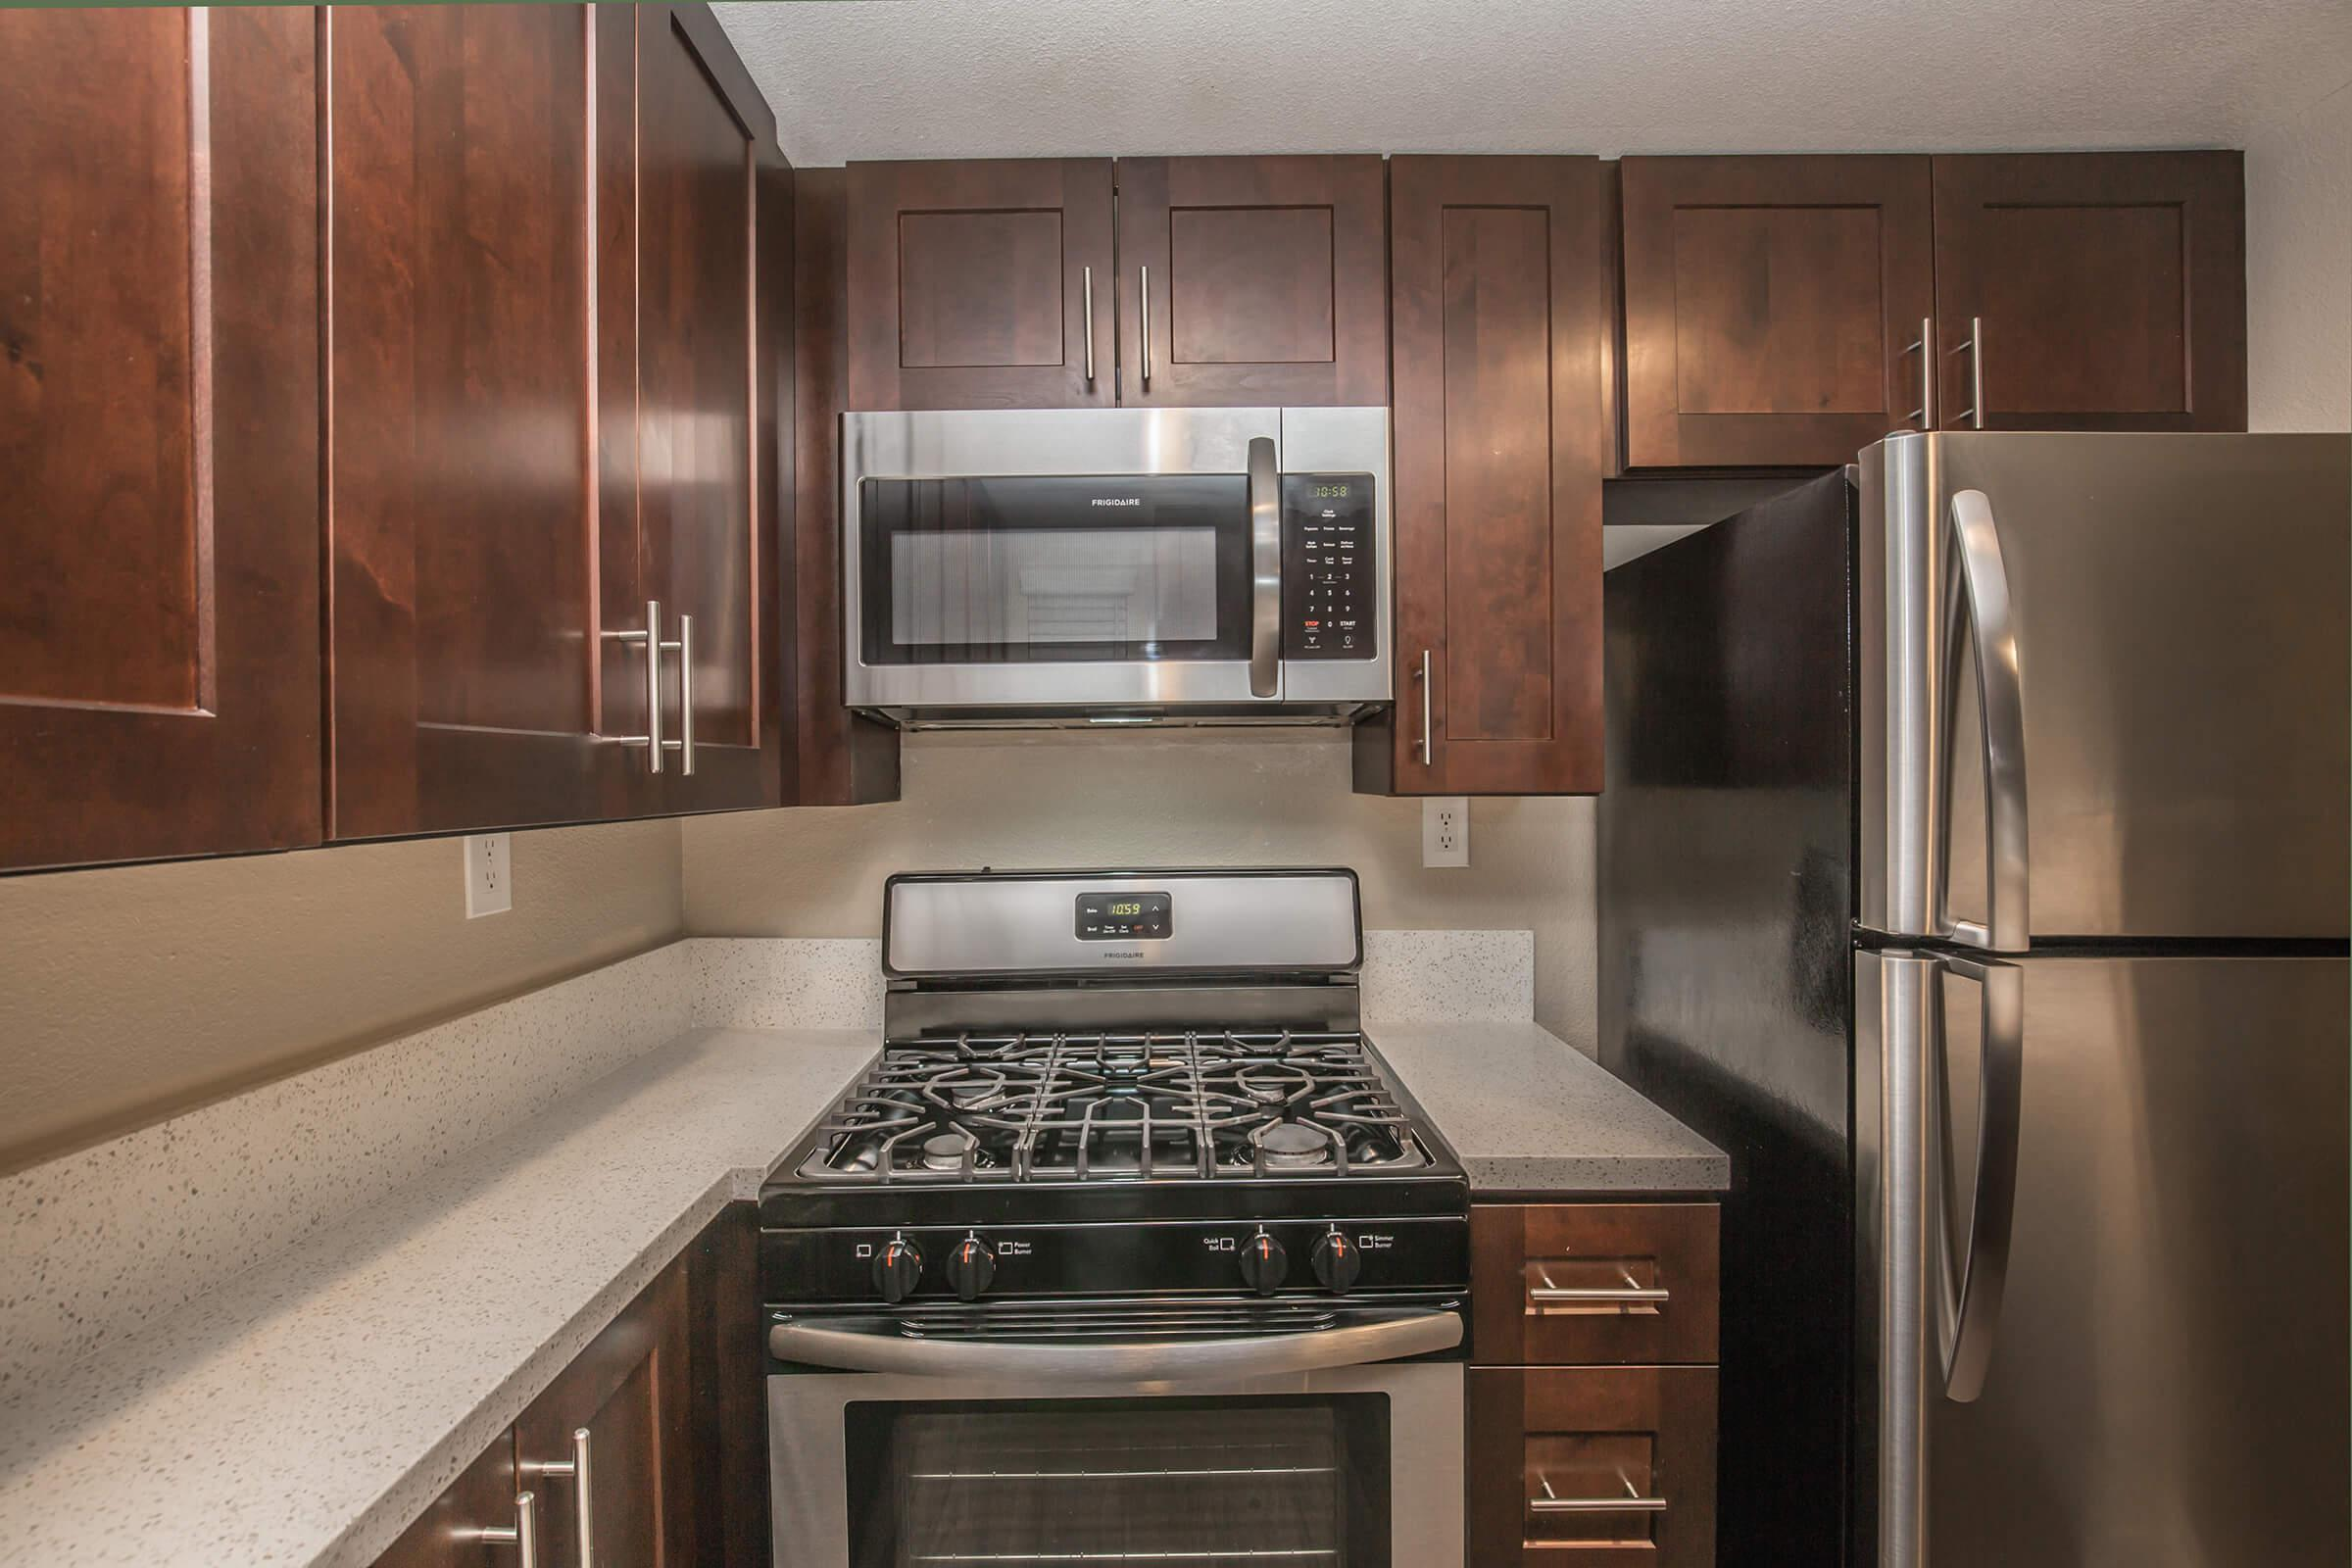 a stove top oven sitting inside of a kitchen with stainless steel appliances and wooden cabinets